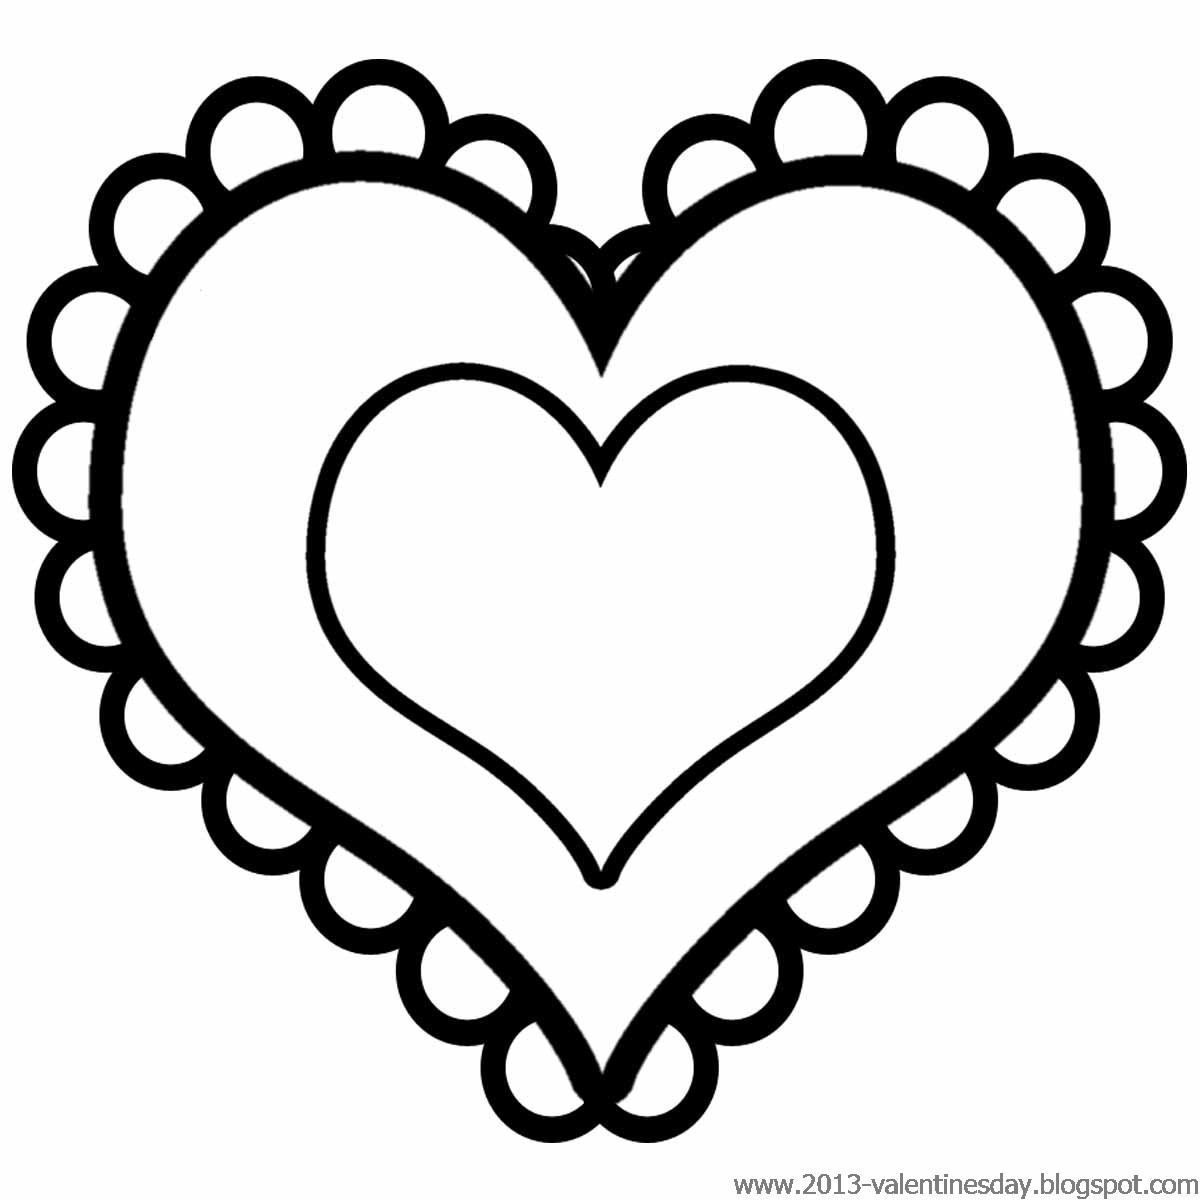 pear 20clipart 20black 20and  Happy Valentines Clipart Black And White